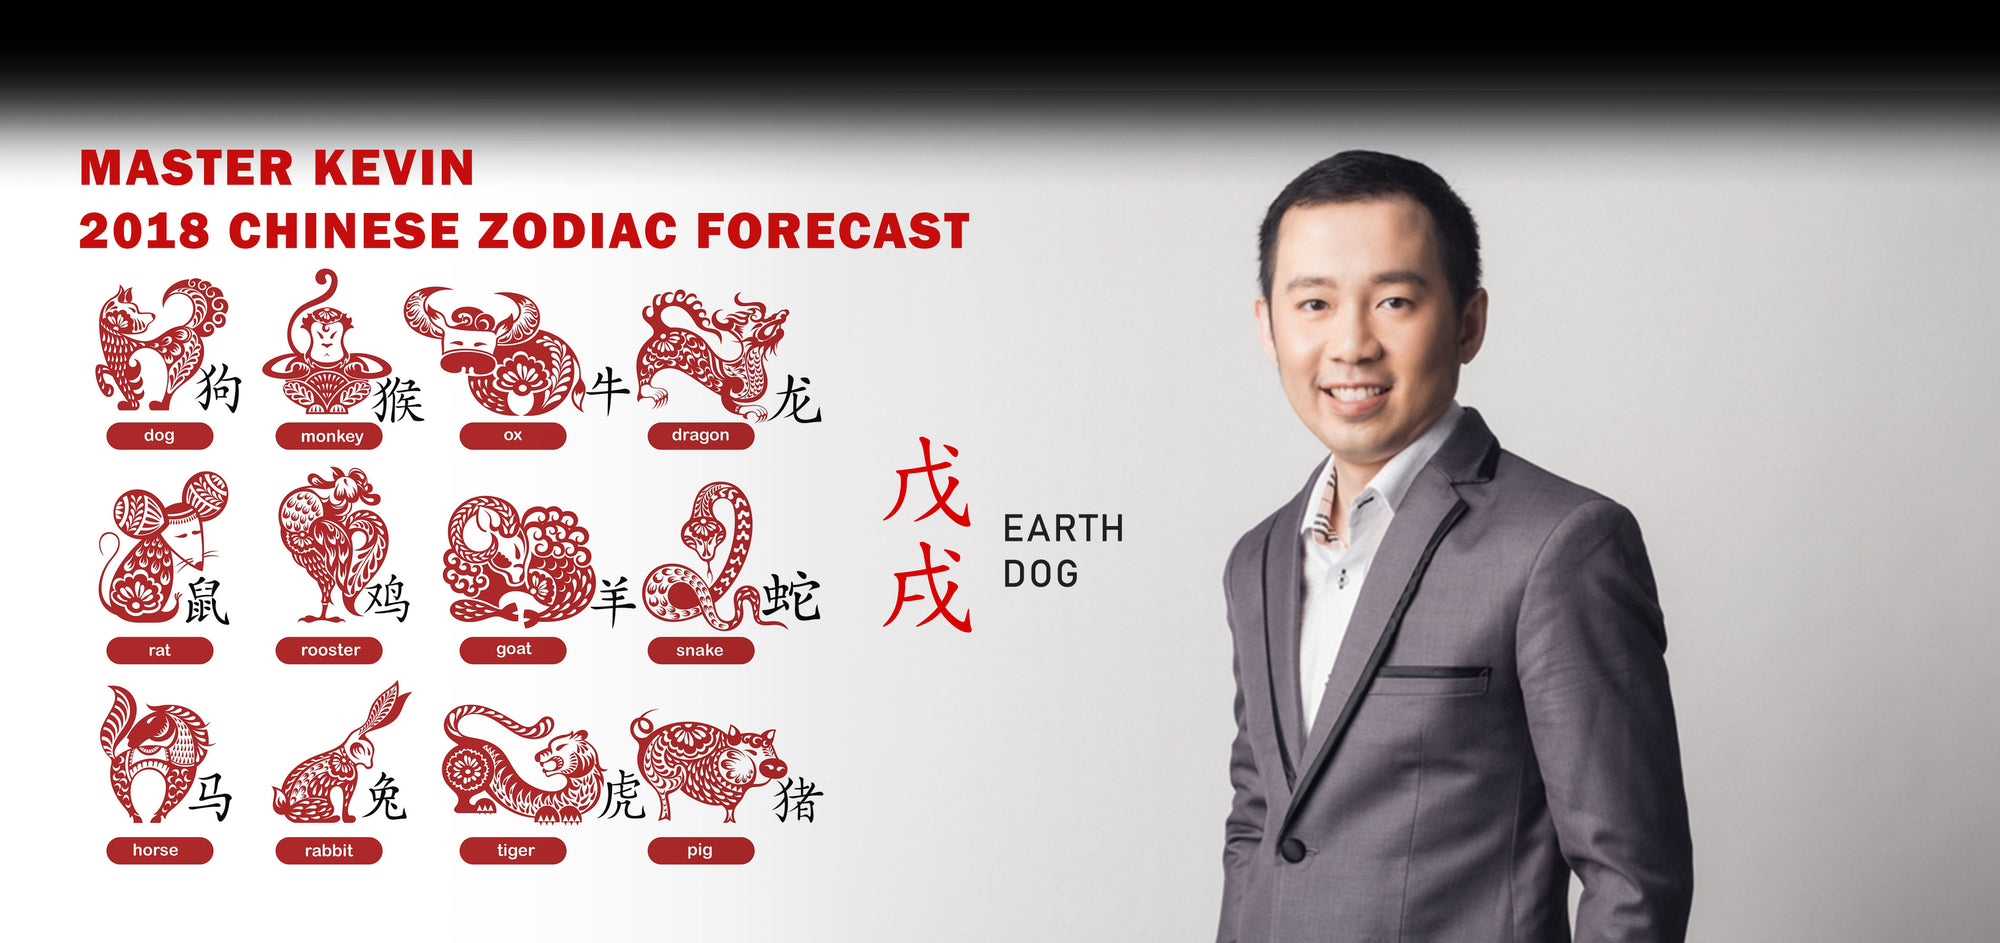 2018 Chinese Horoscope Animal Forecast & Zodiac by Master Kevin Foong